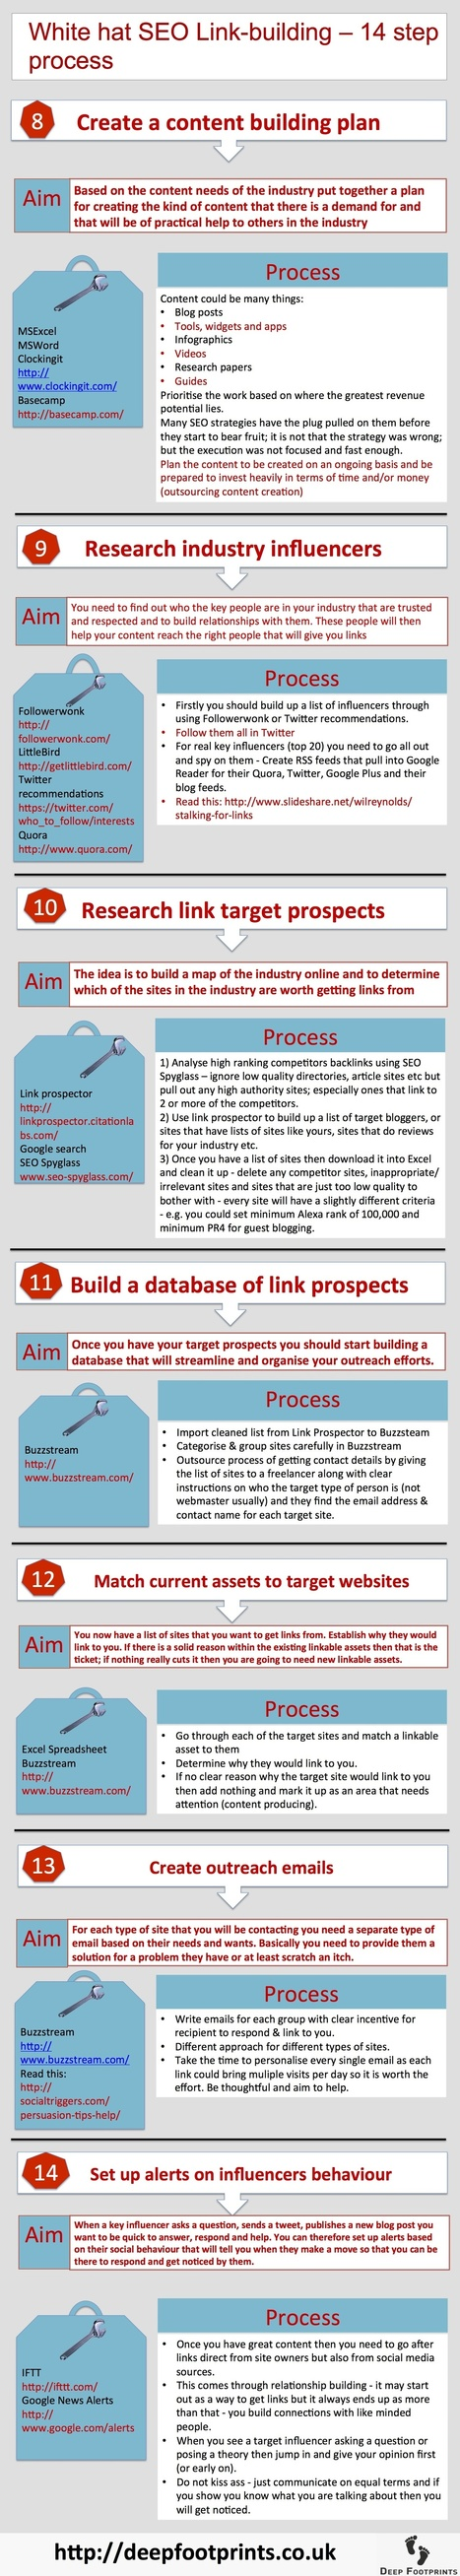 White hat SEO Linkbuilding infographic - 14 step process | ENT | Scoop.it